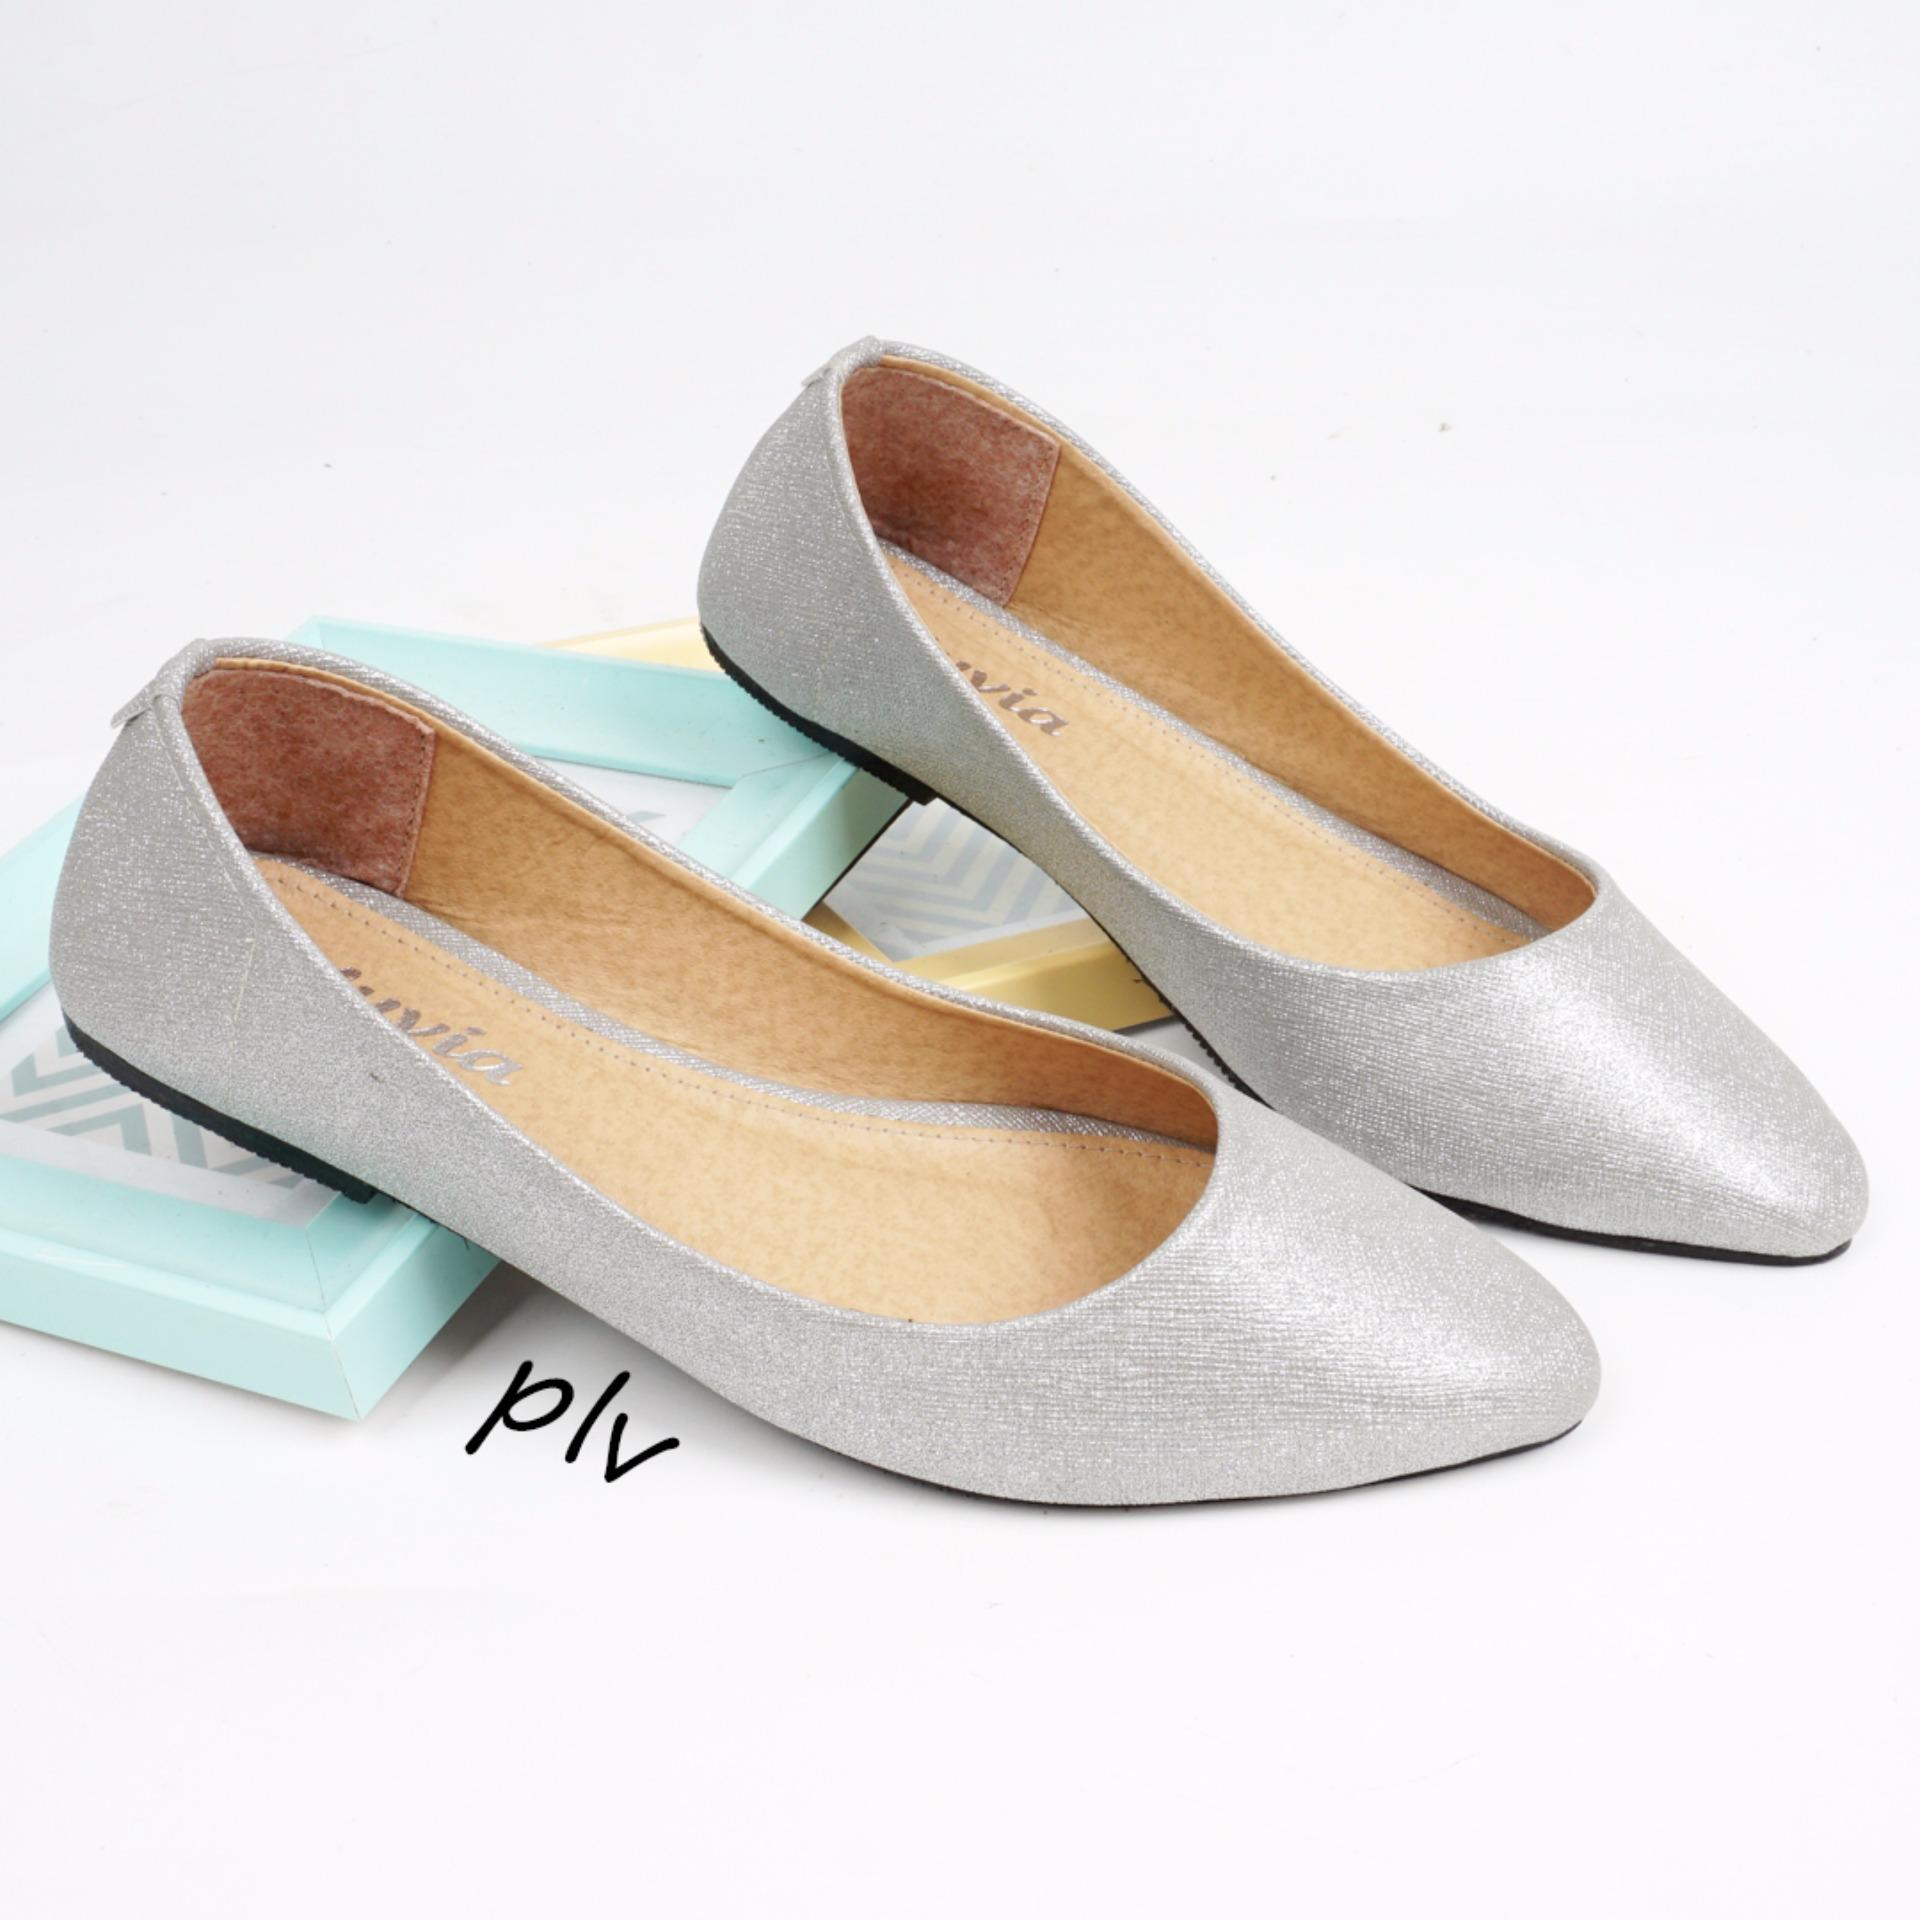 Review Terbaik Pluvia Pointed Toe Flat Shoes Wanita Db169 Abu